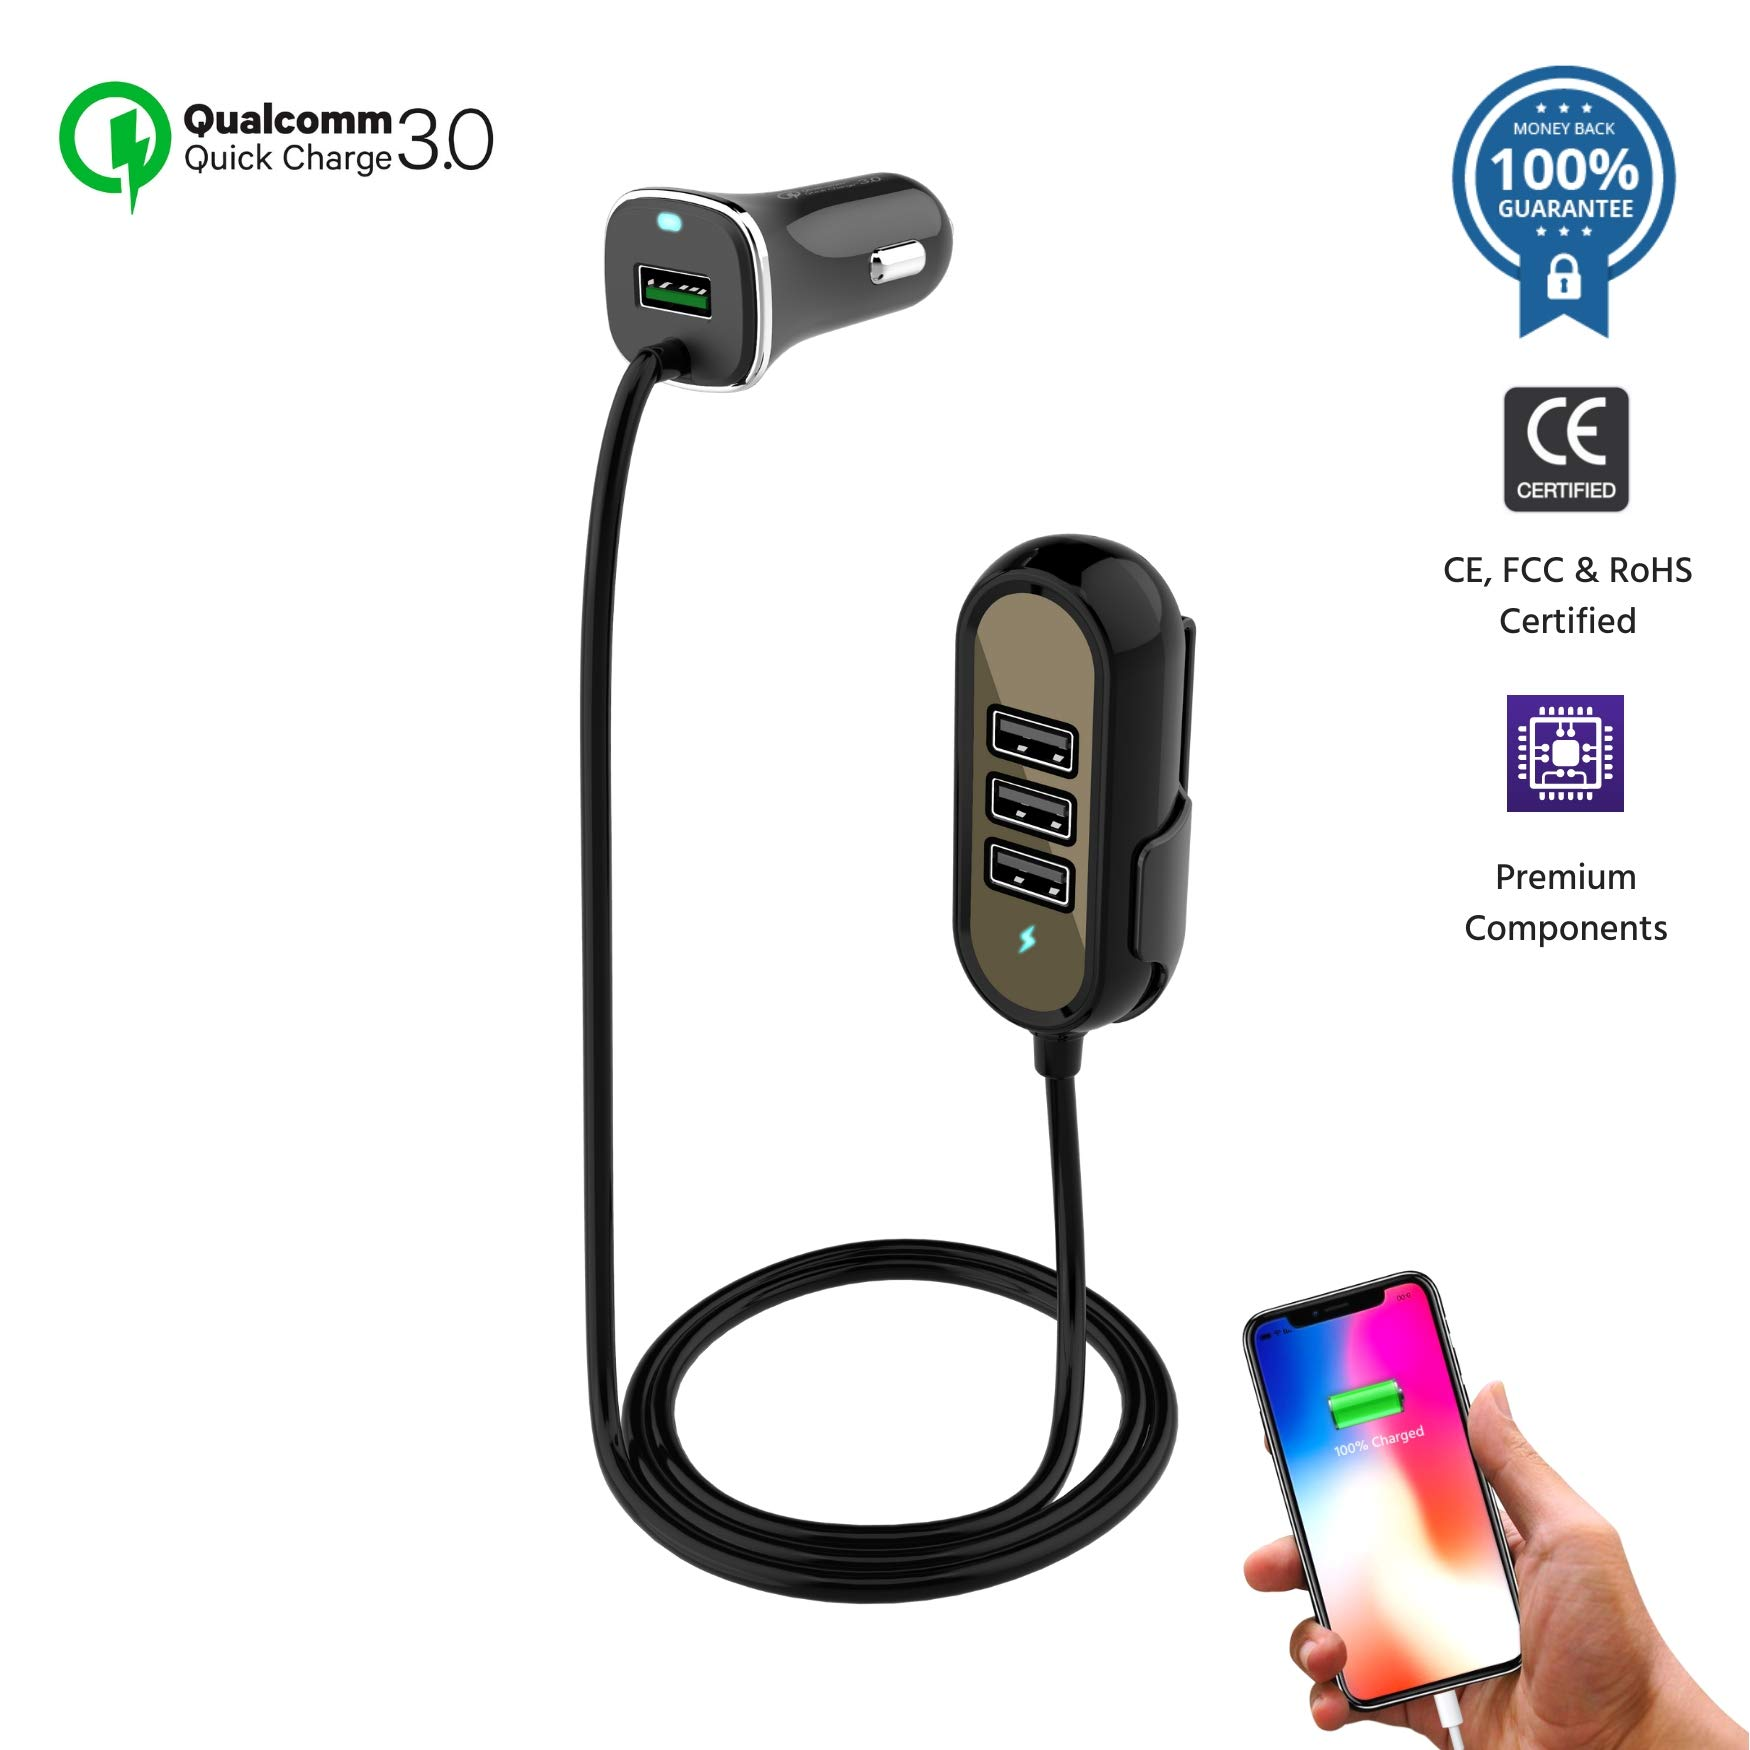 Multi-Port QC3.0 USB Car Charger Adapter Compatible for iPhone X/8/7/Plus, iPad Pro/Air/Mini, Samsung Galaxy S9/8/7/Note, LG, Motorola and More | Cigarette Lighter Charge